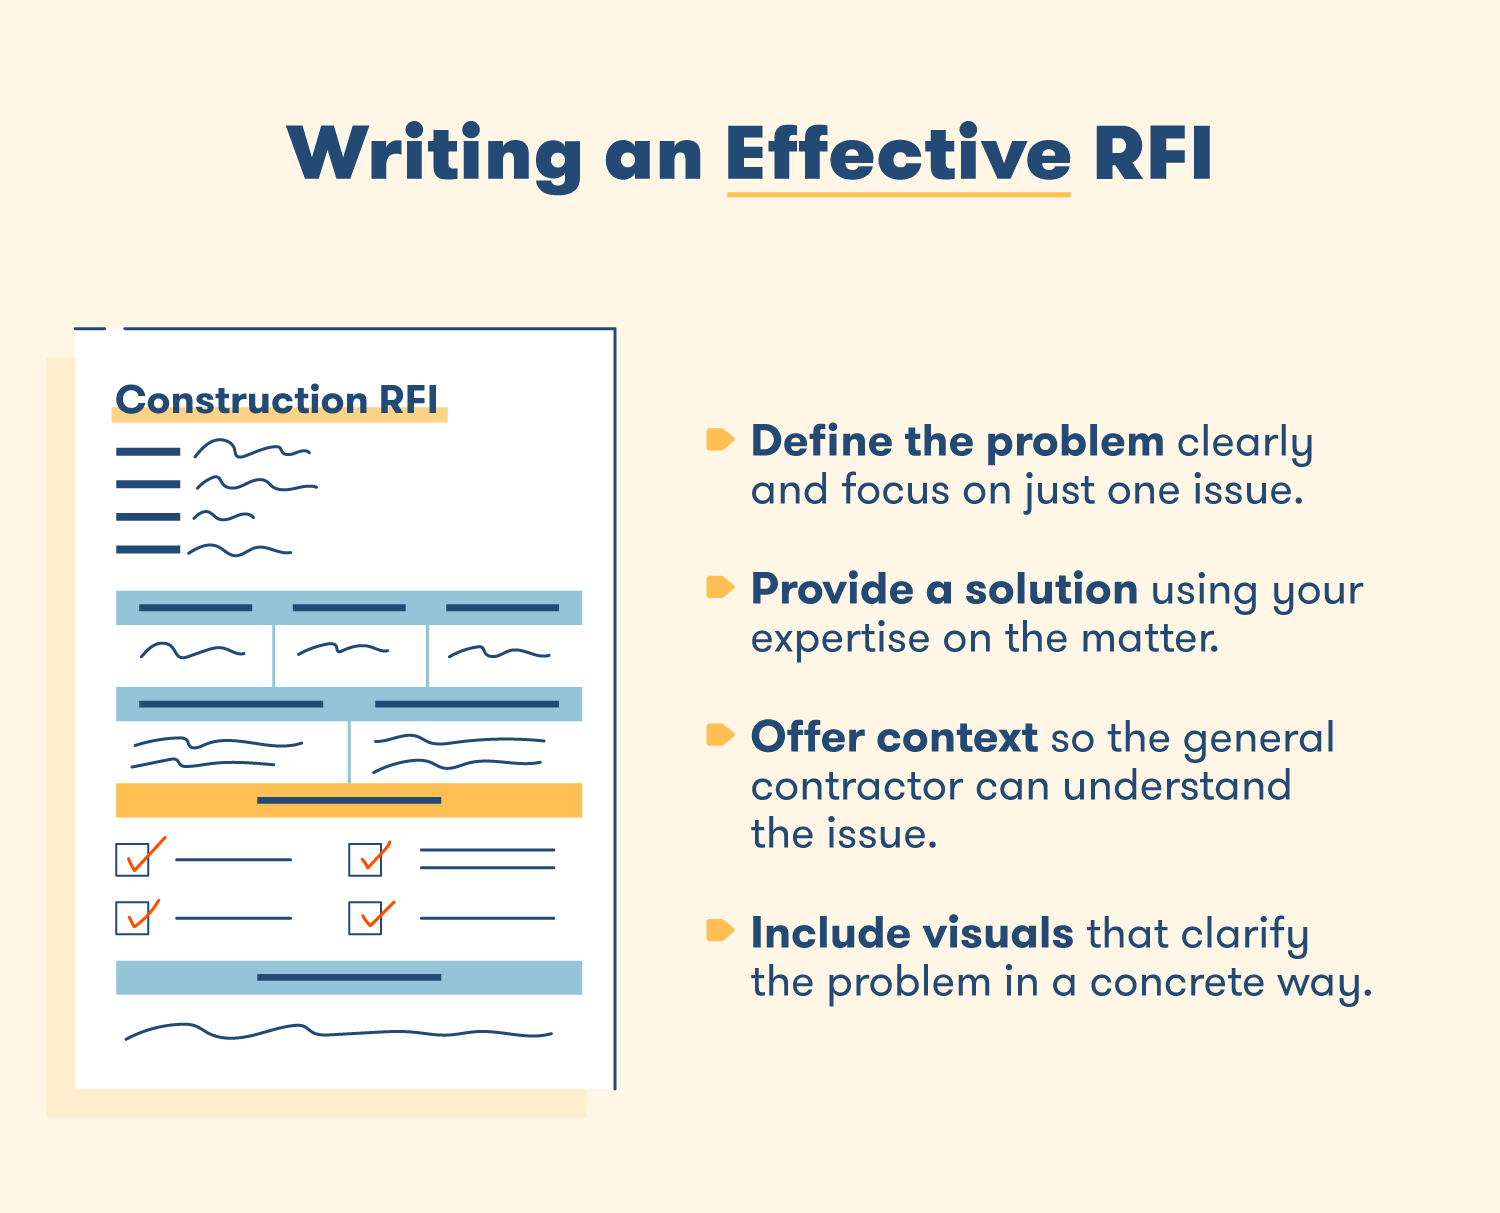 Tips for writing an effective RFI.